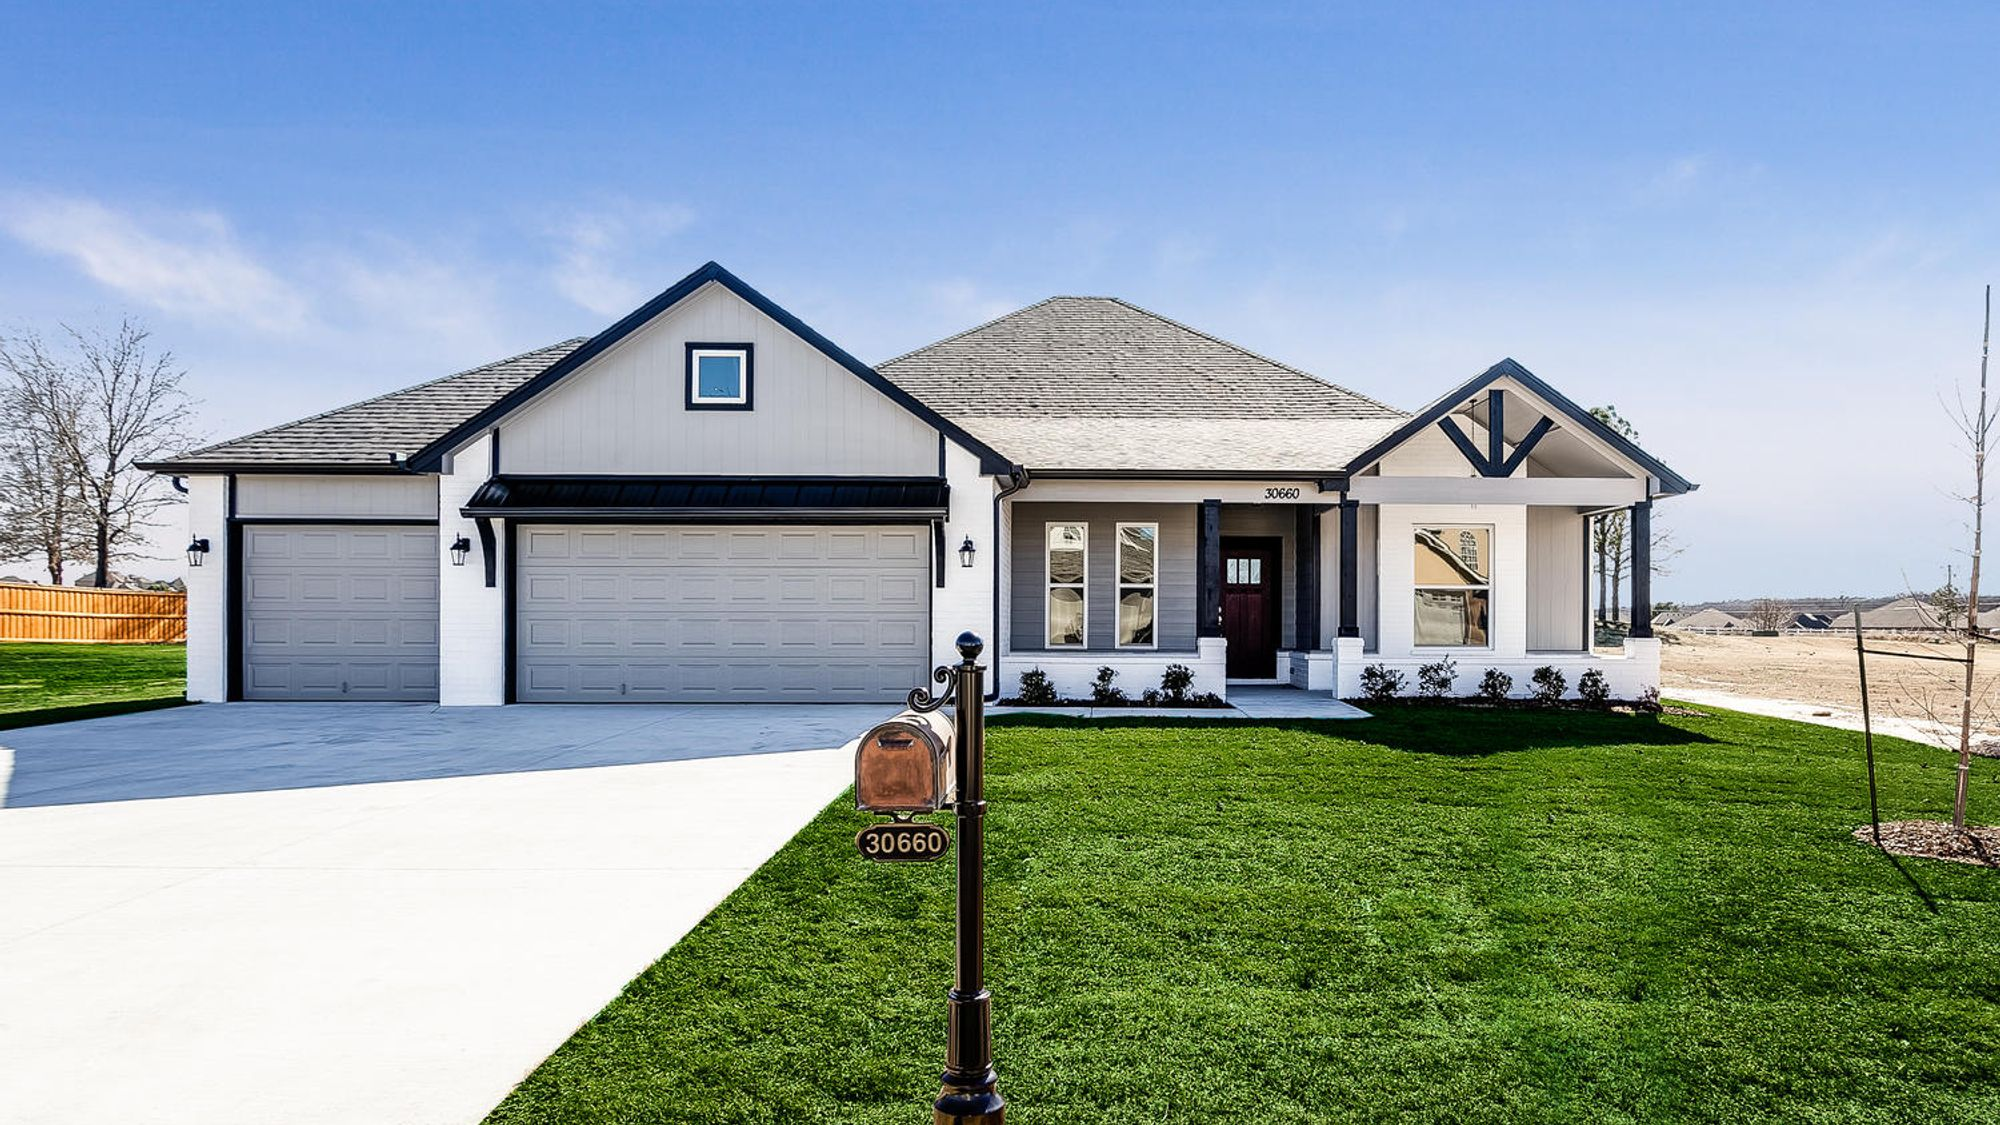 Sample Home in Emerald Falls - The Madison U